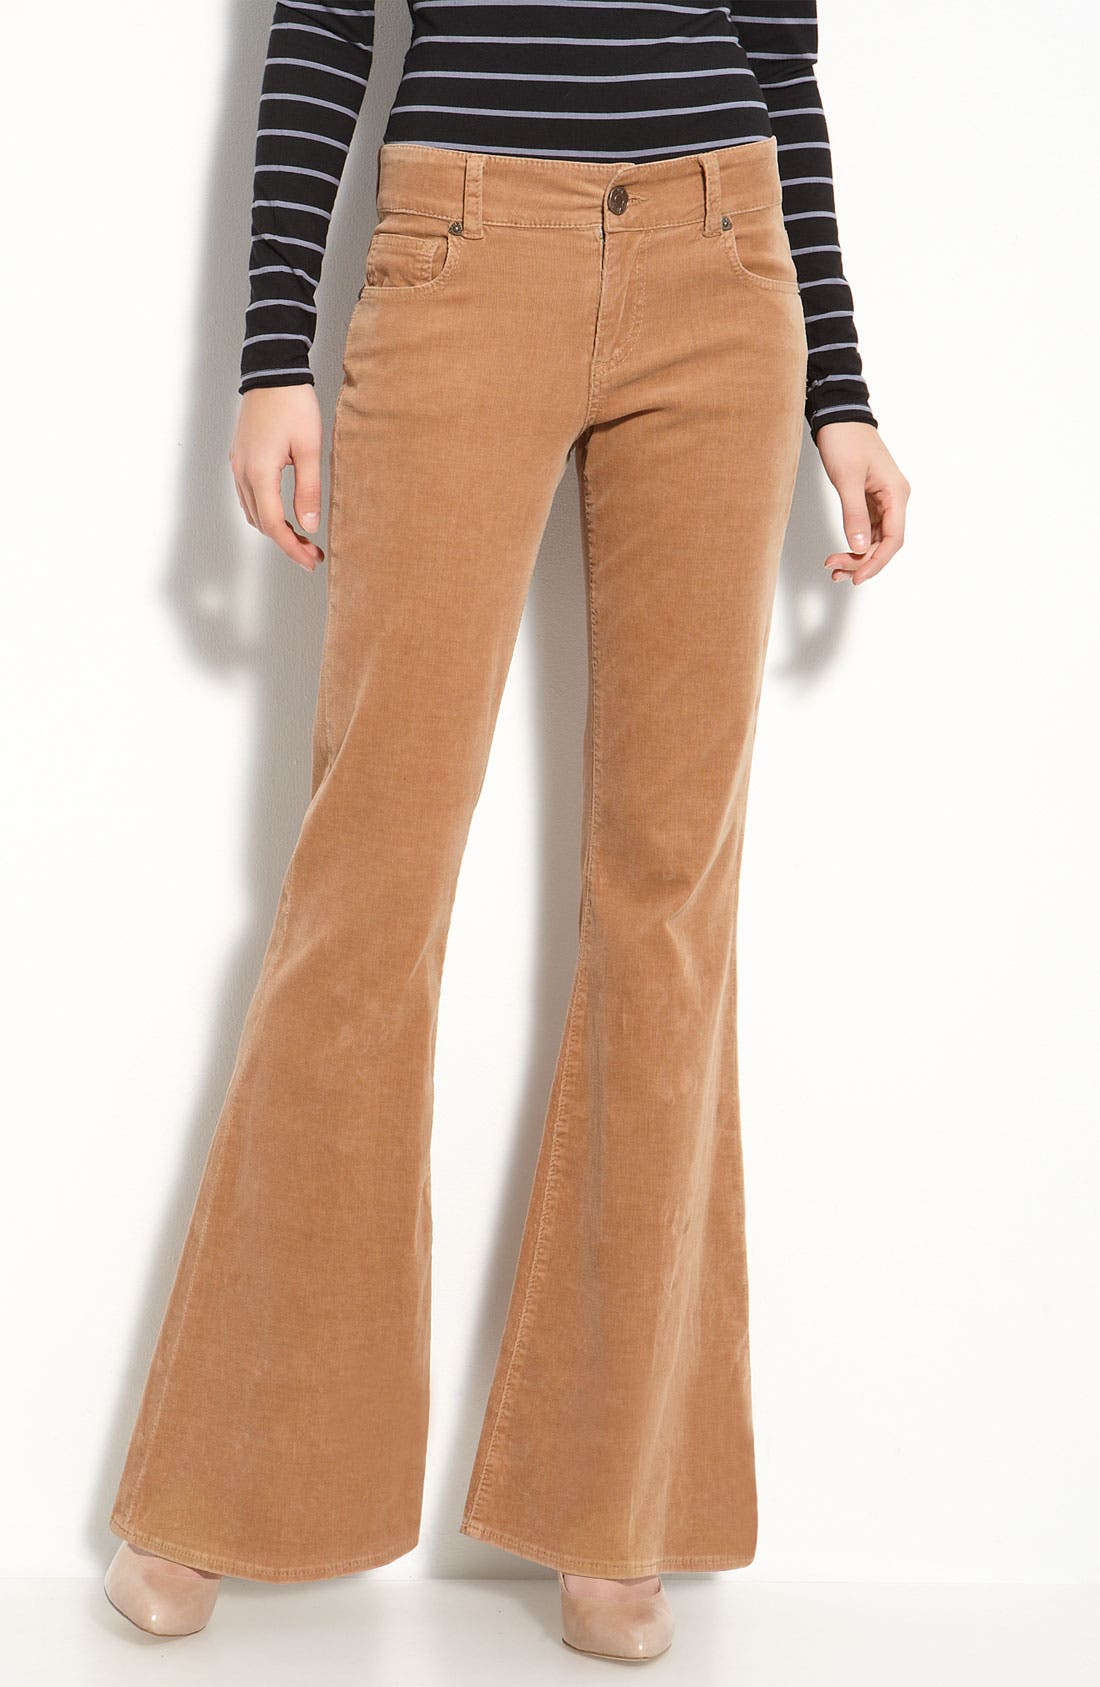 Alternate Image 1 Selected - KUT from the Kloth Flare Leg Corduroy Pants